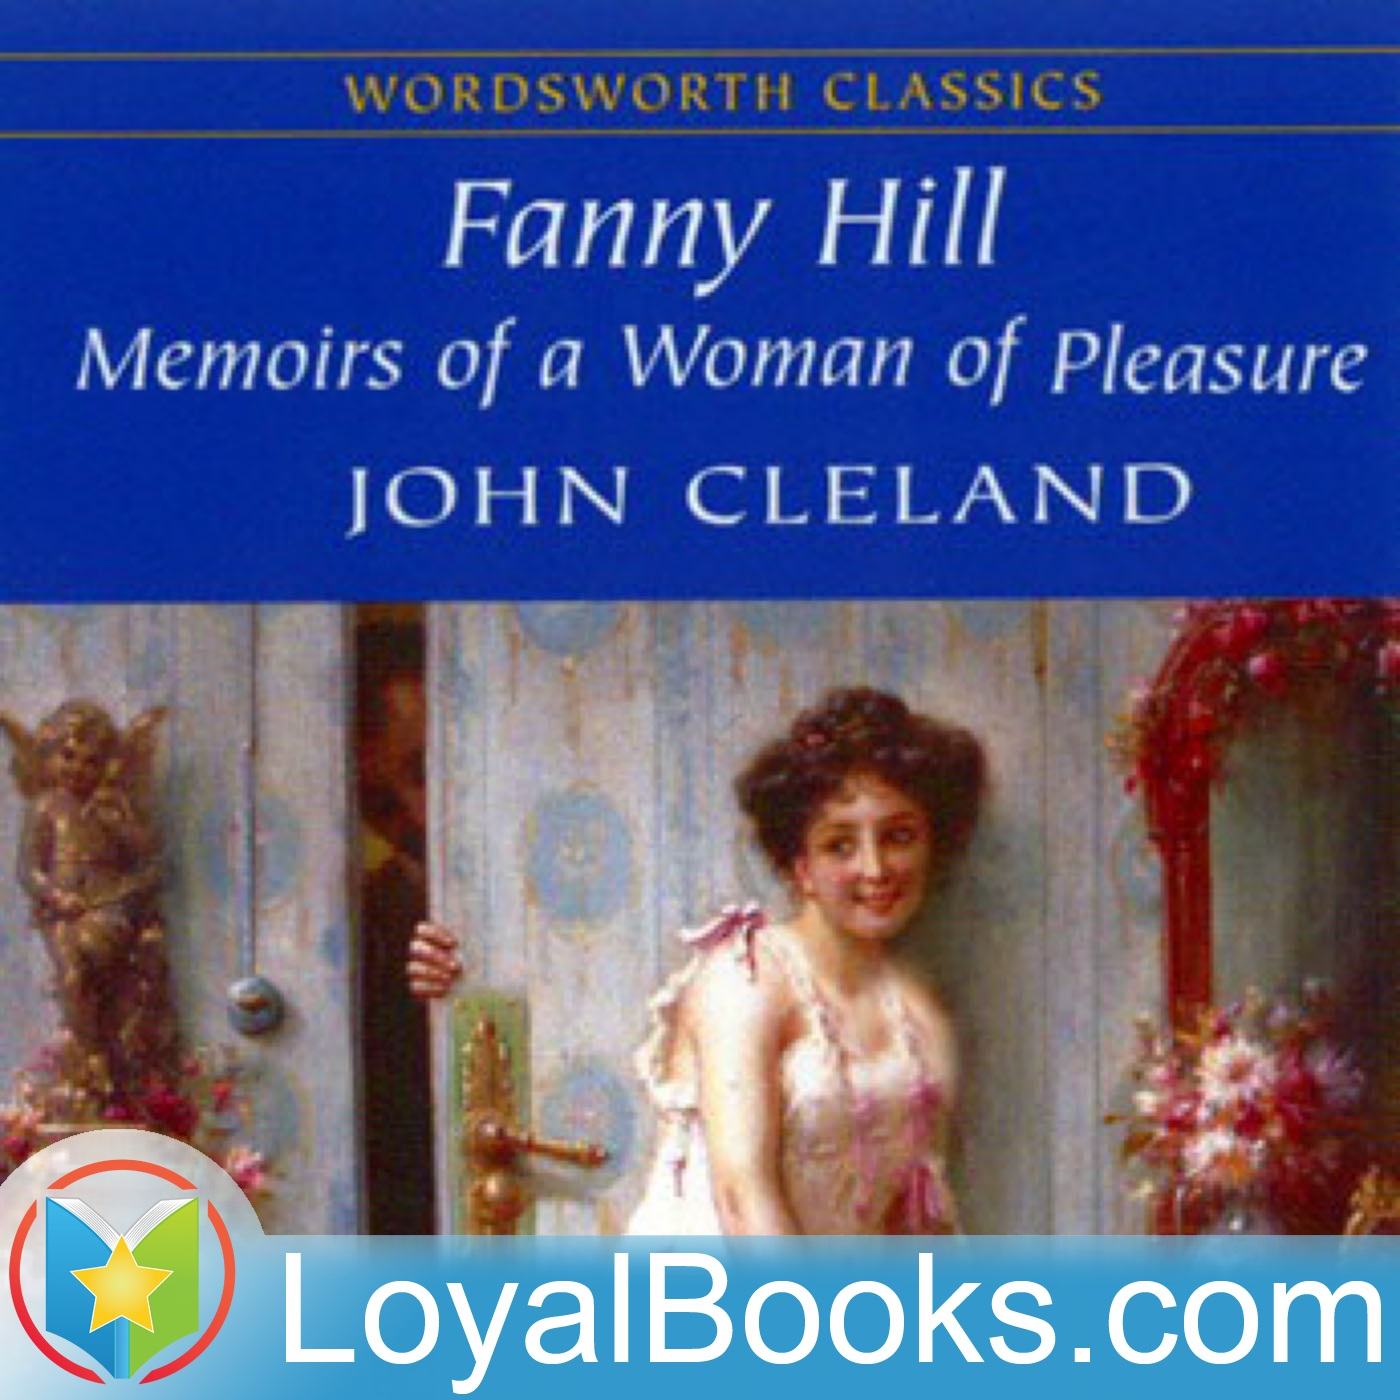 <![CDATA[Fanny Hill: Memoirs of a Woman of Pleasure by John Cleland]]>